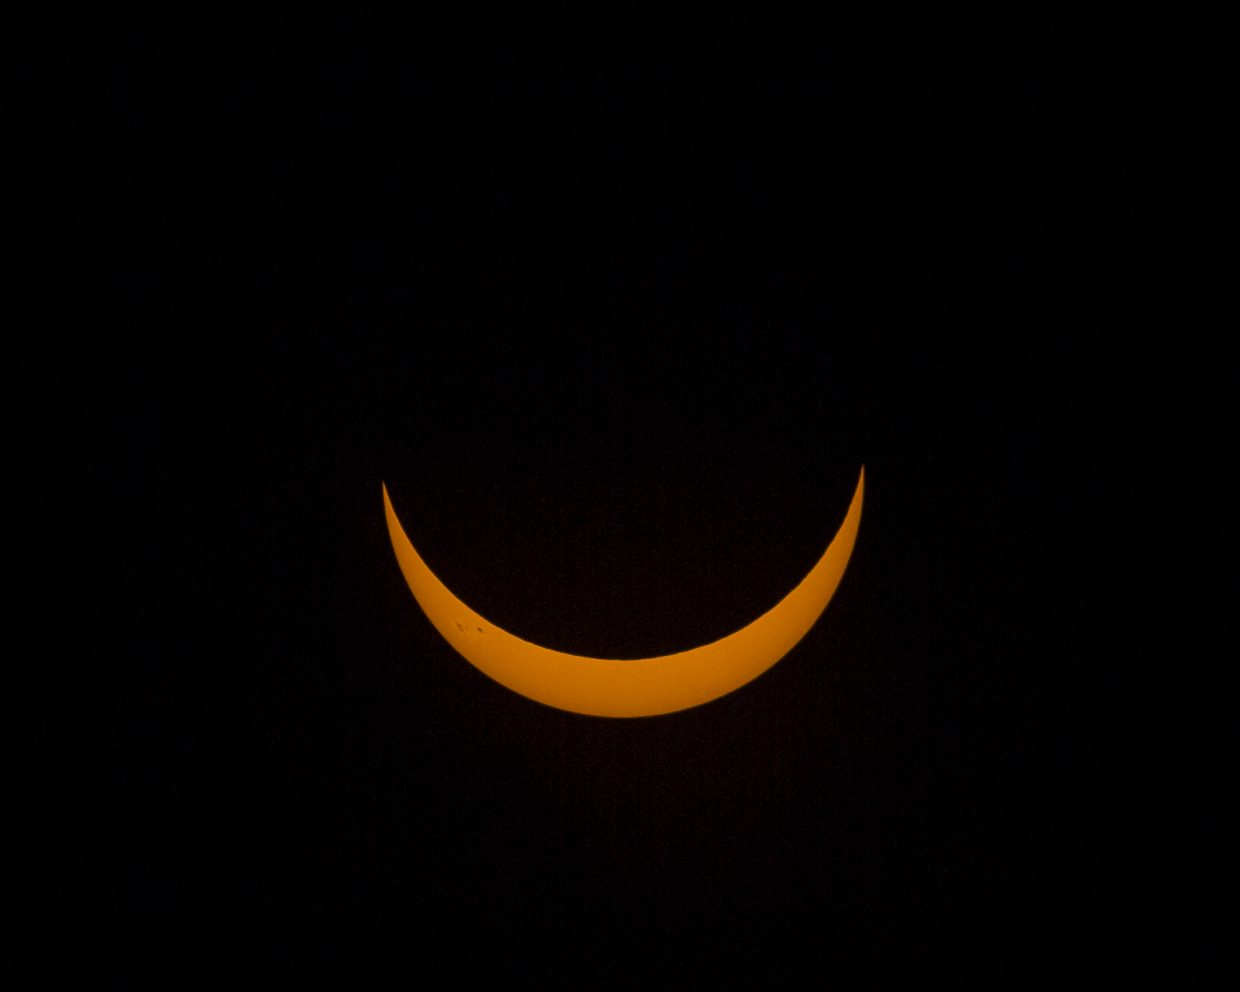 A nearly total solar eclipse is visible from Summit County late Monday morning, Aug. 21.